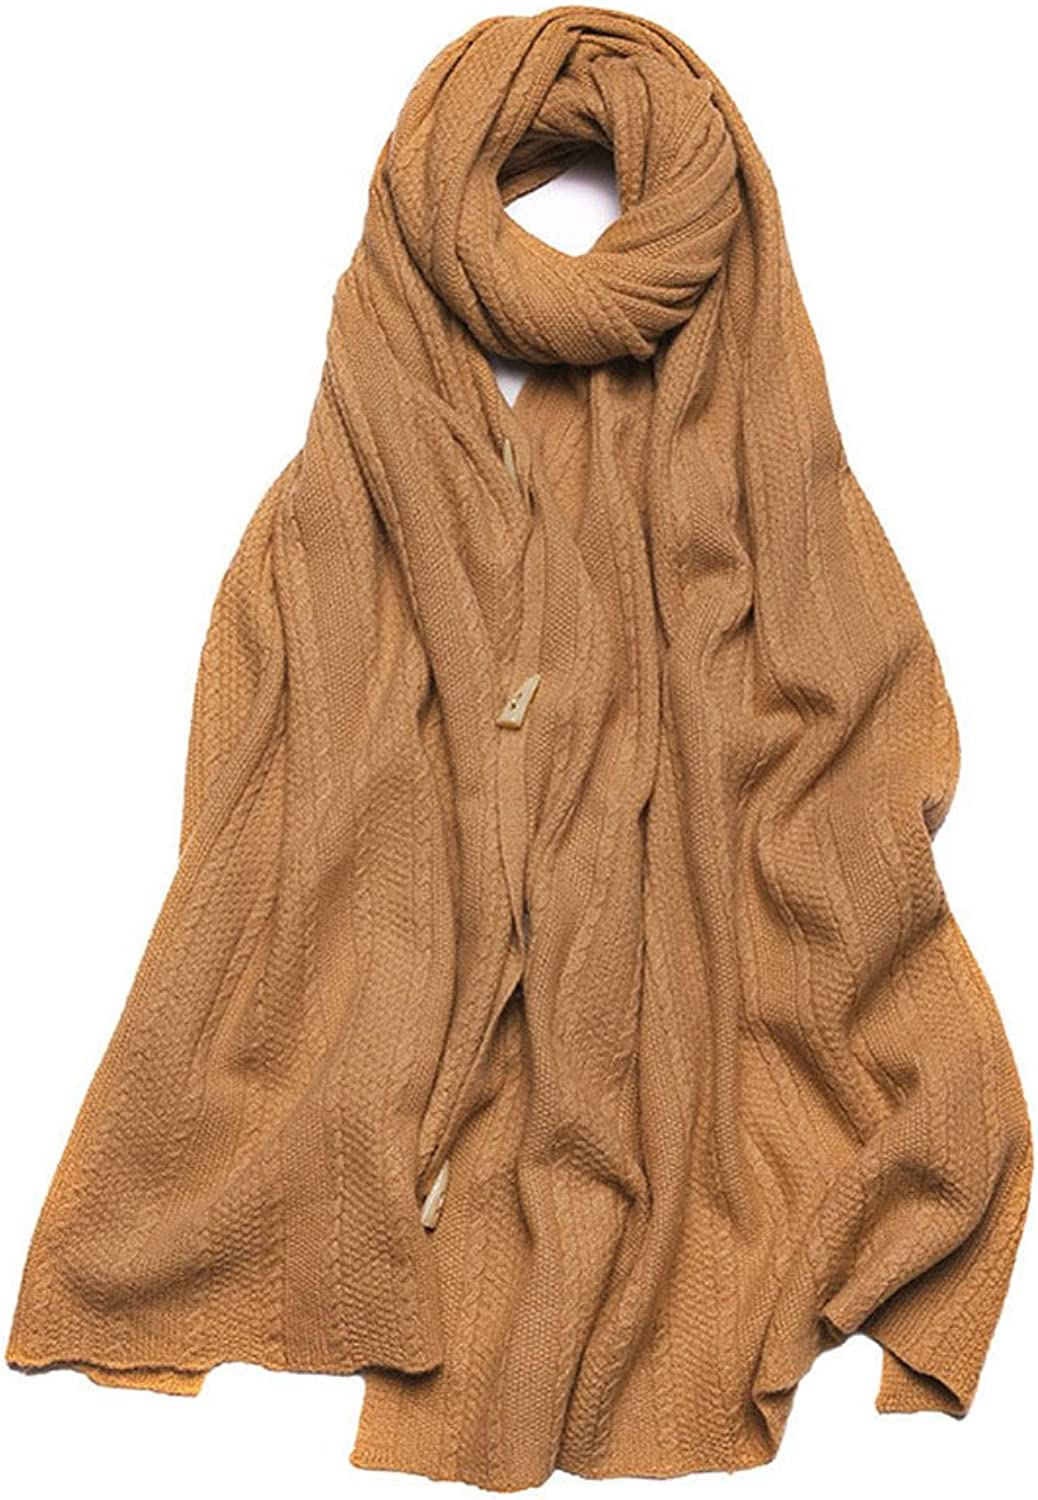 Buckle Cashmere Scarf Shawl Scarves Knitted Warm Coat Ms.,Camelyellow